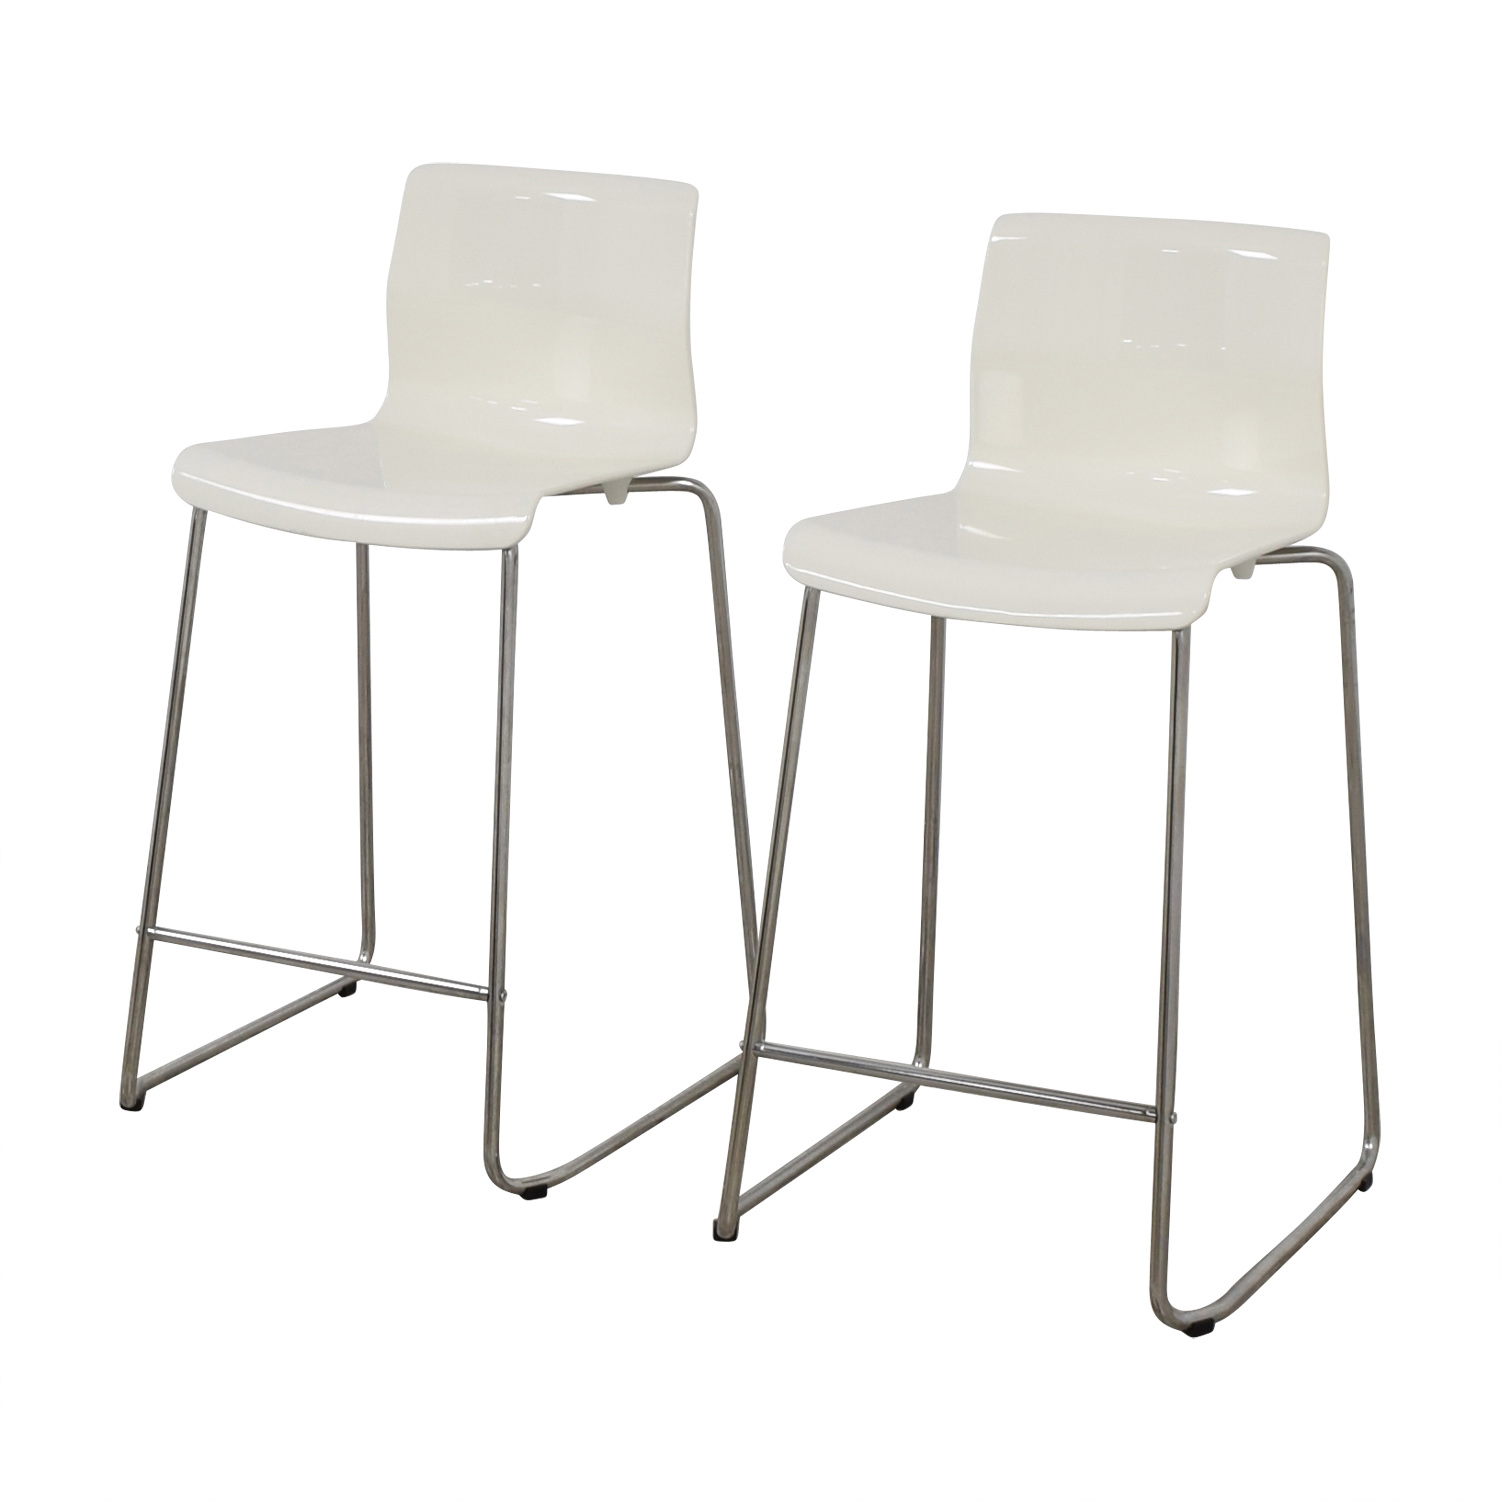 Stools White Chairs J3laq54rcs Glenn 57off Ikea Bar EHD92IWY